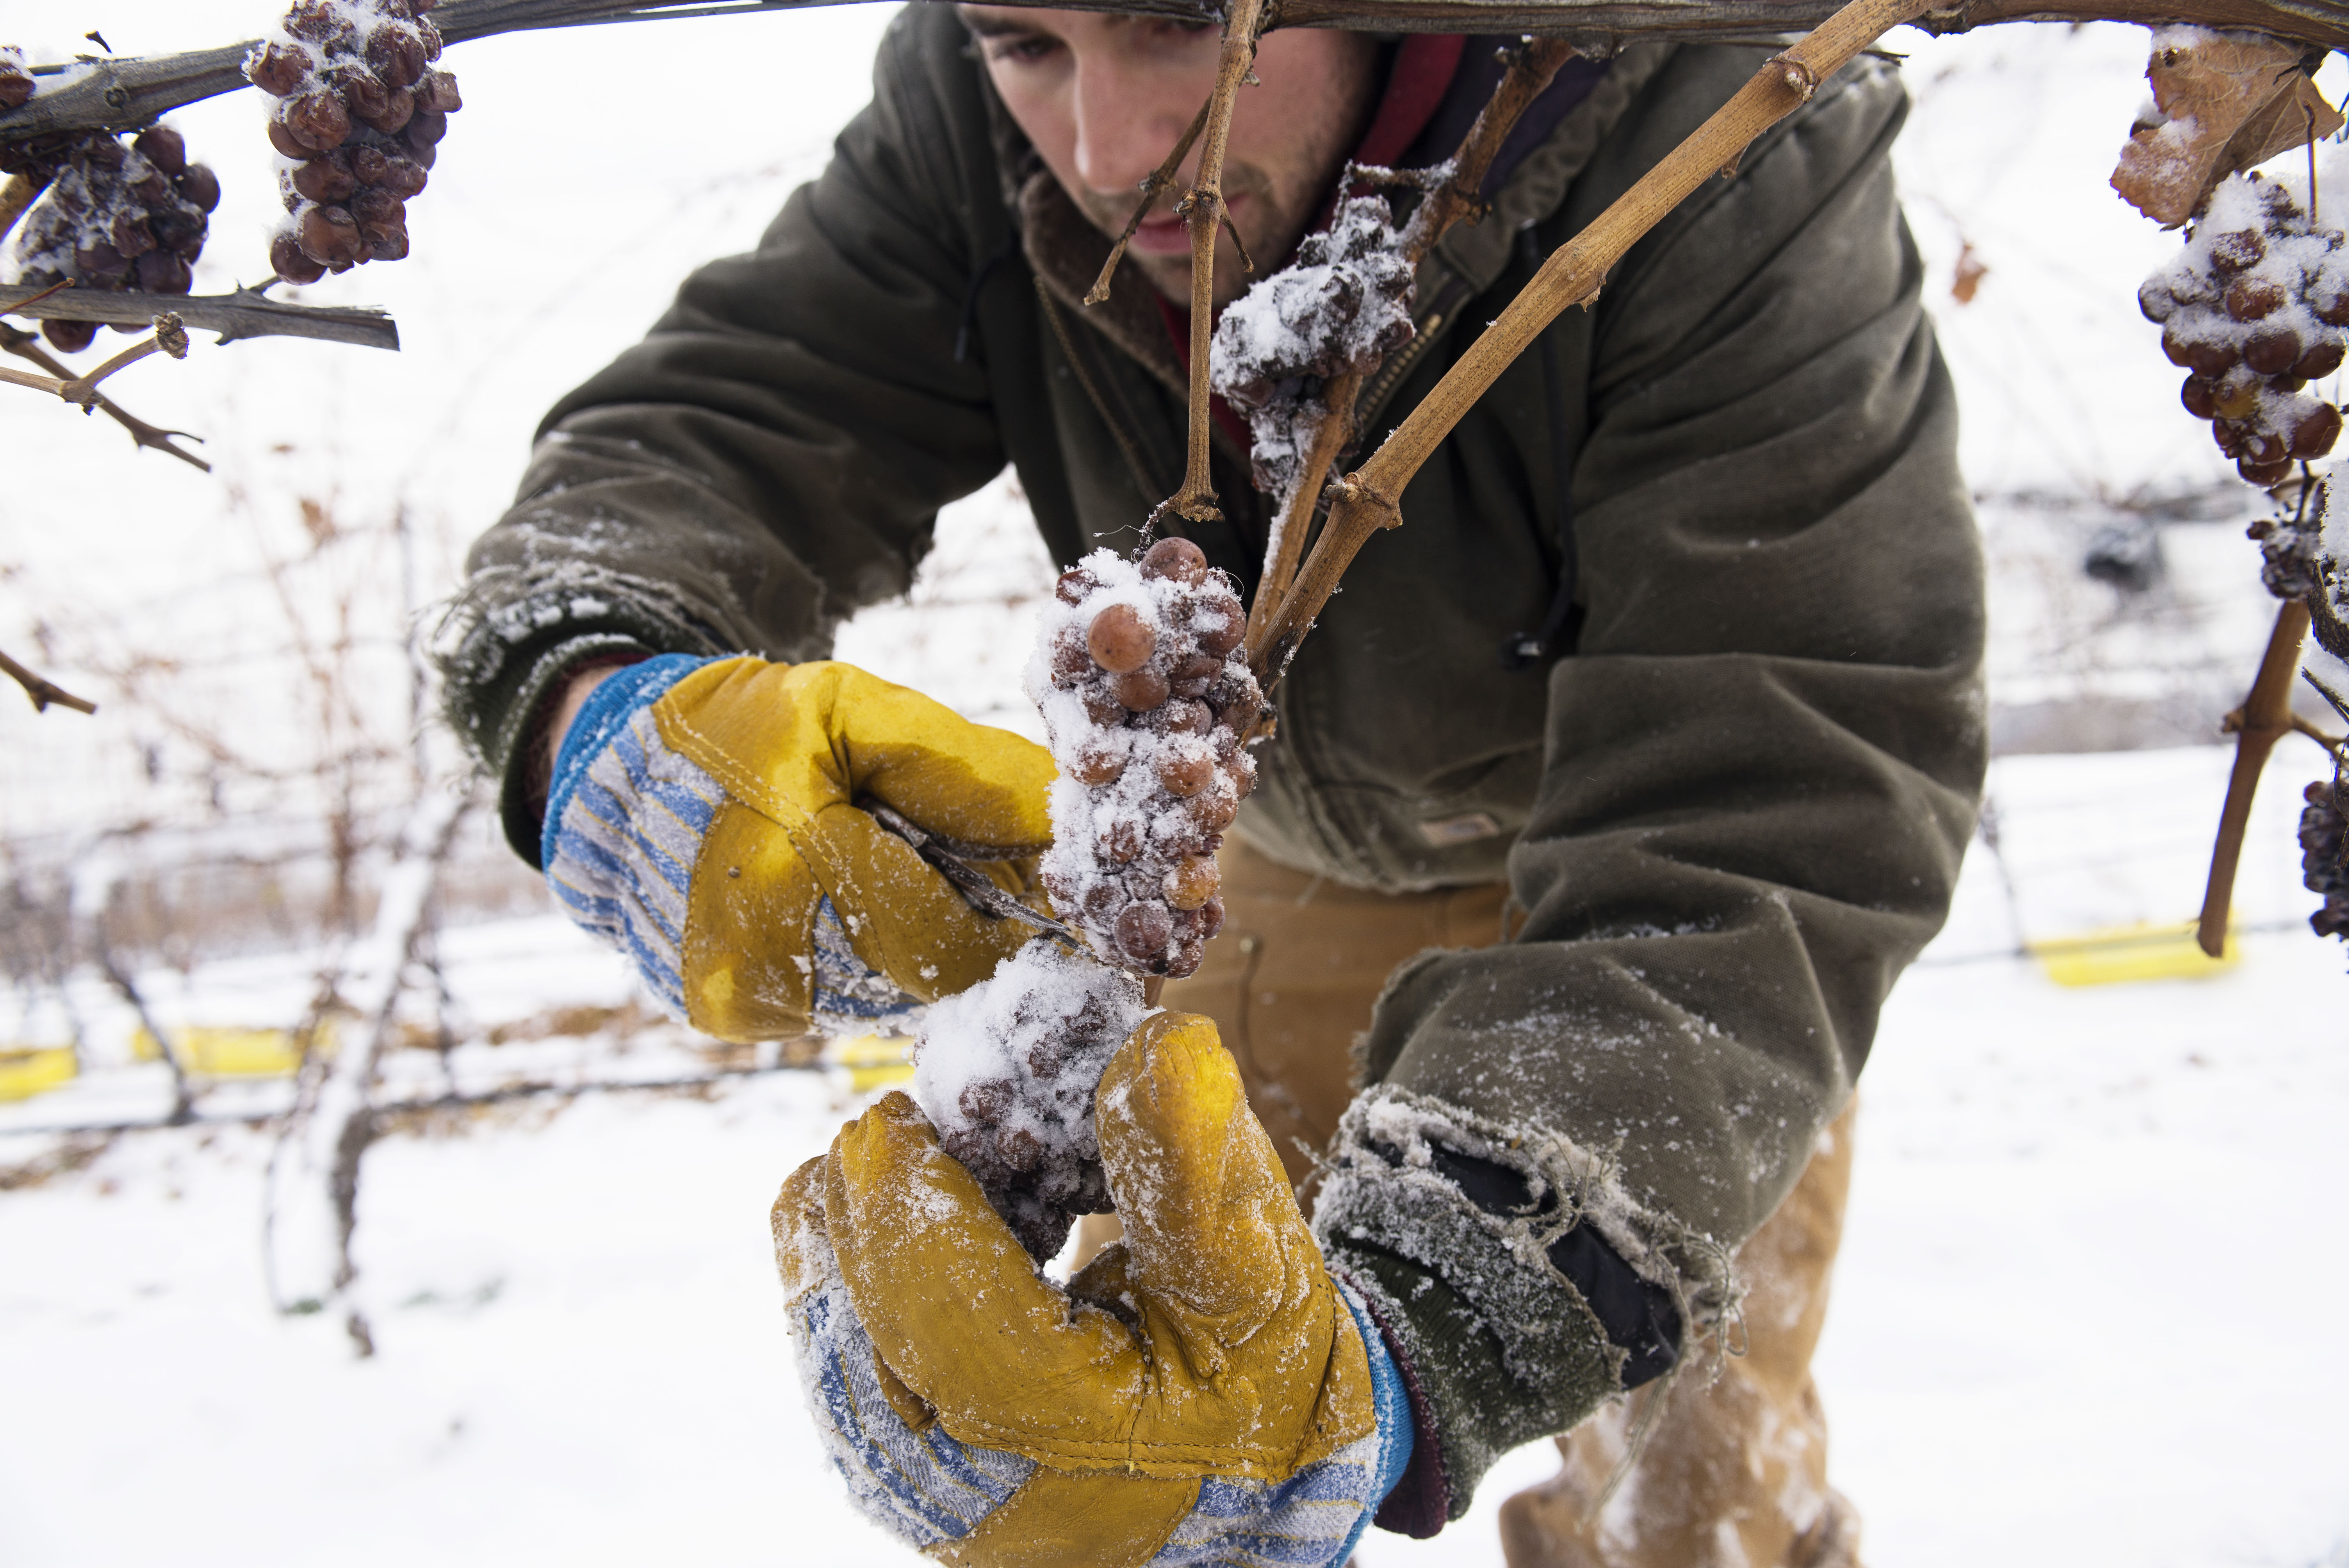 Finger Lakes Ice Wine Harvest